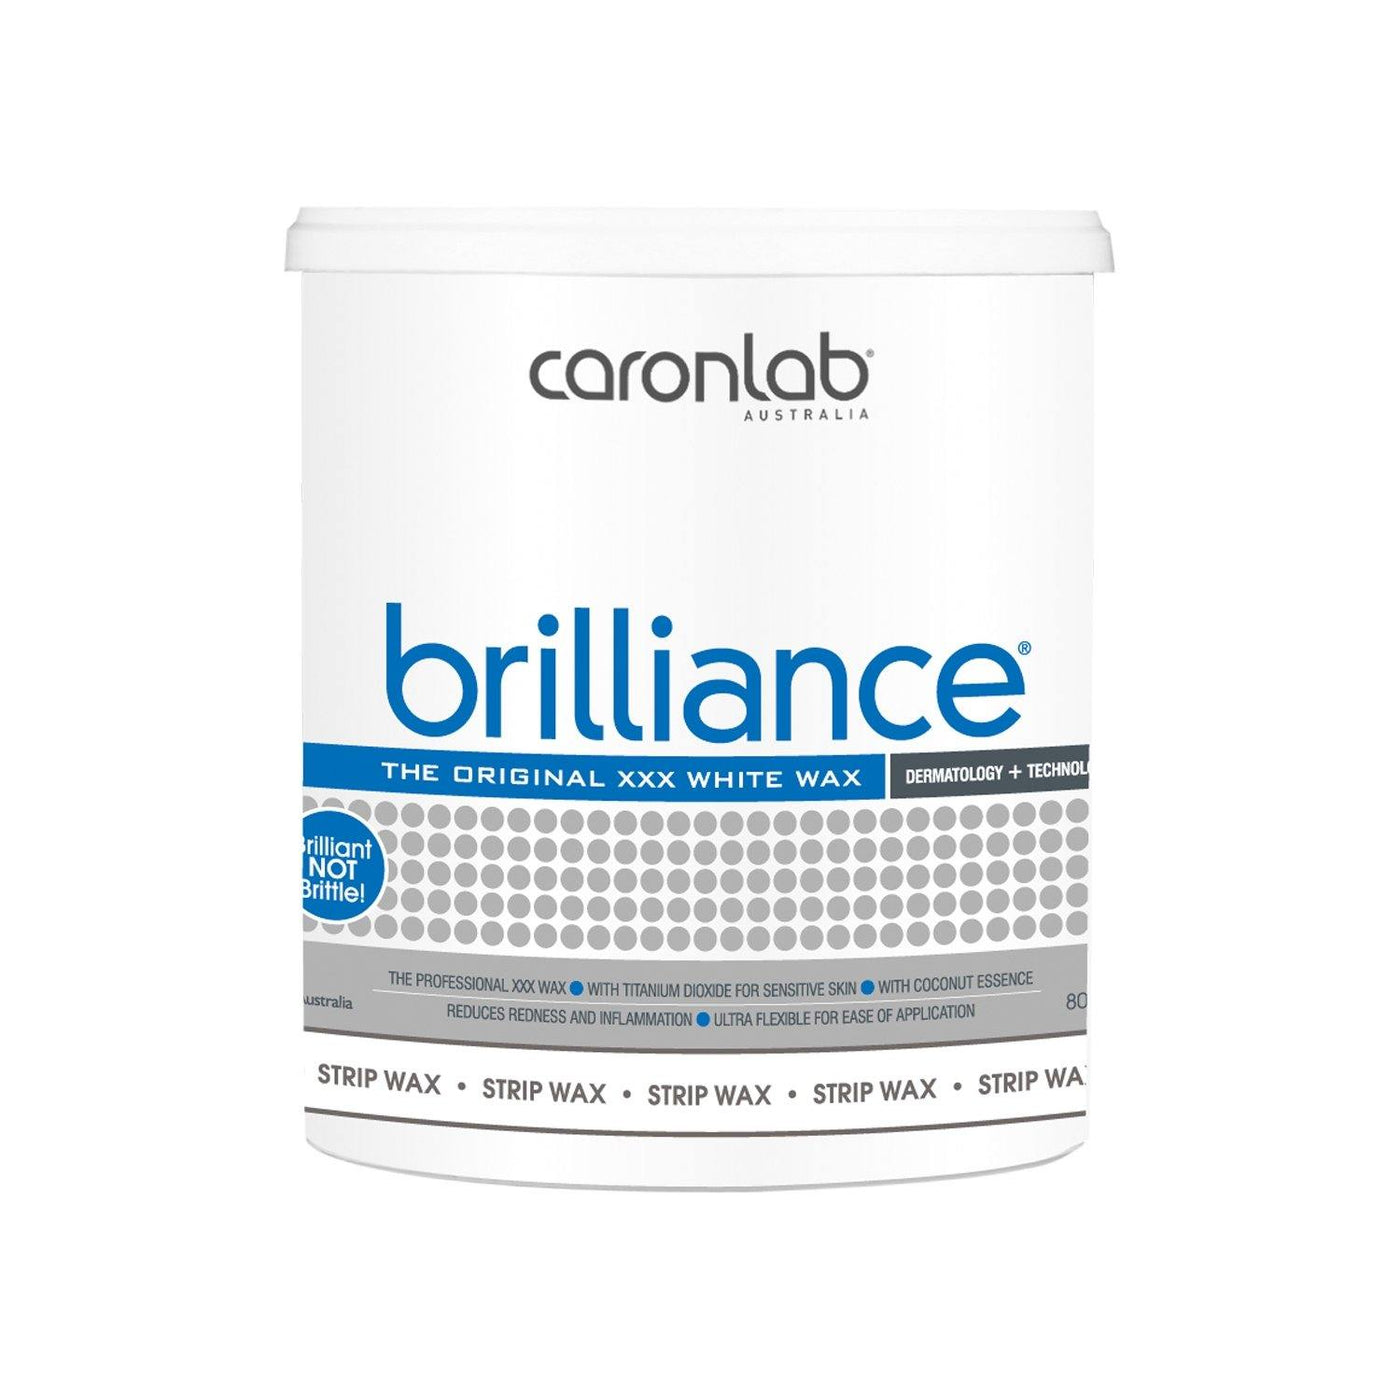 Caronlab Brilliance Strip Wax 800ml